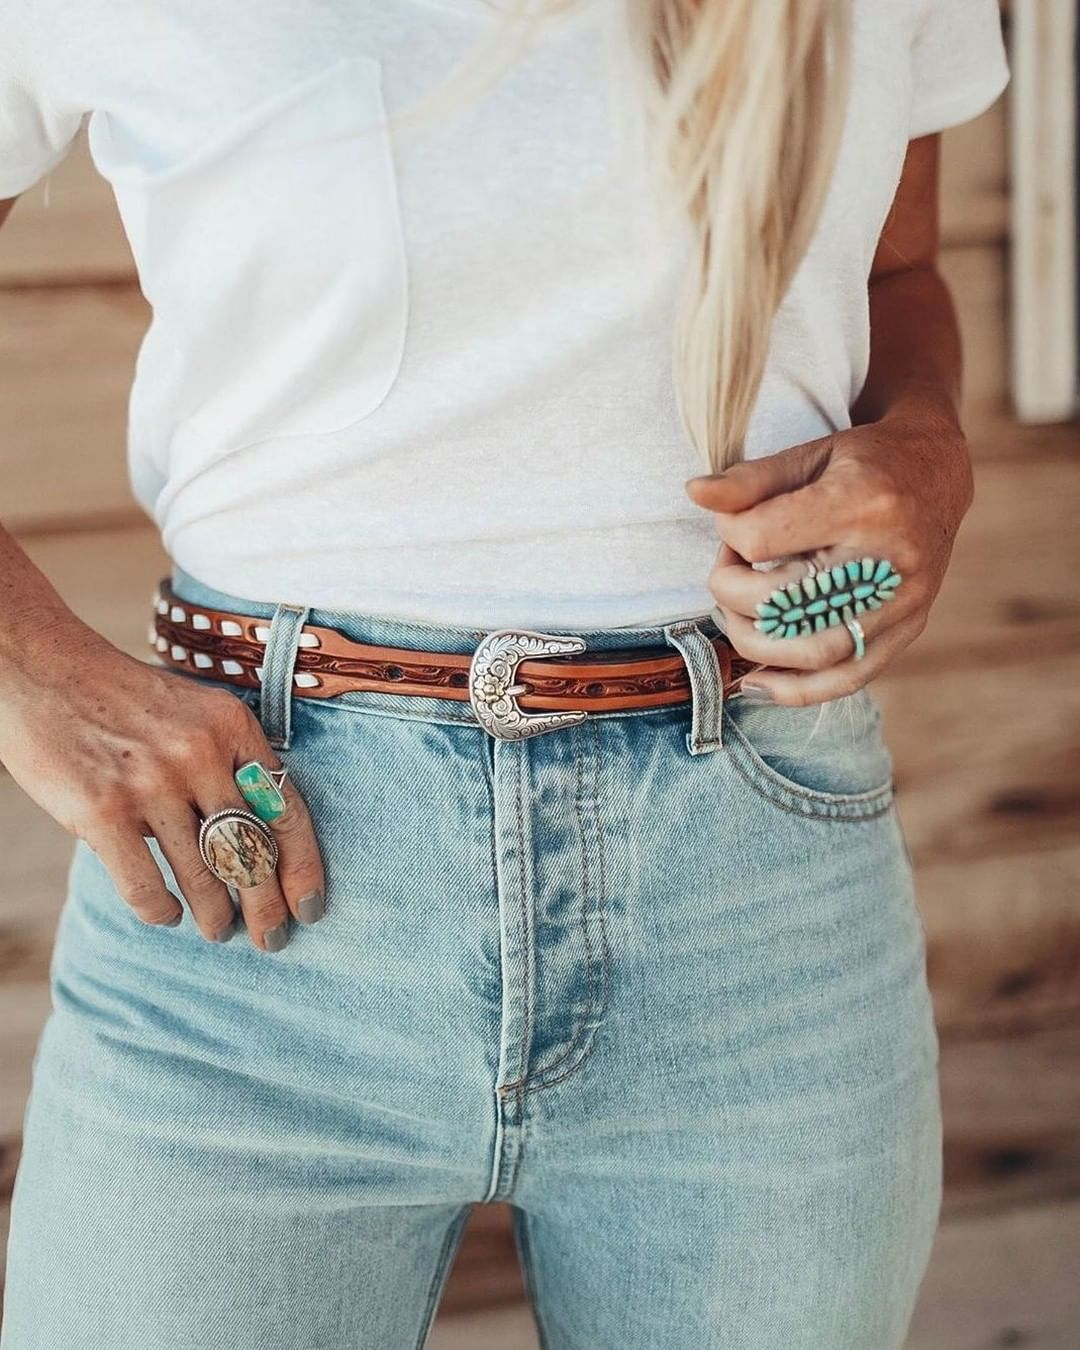 "COWGIRL Magazine on Instagram: ""Belts and baubles. Photo Credit: @flatlandtradingcompany . . . . #cowgirl #cowgirls #cowgirlmagazine #iamcowgirl #magazine #fashion…"""